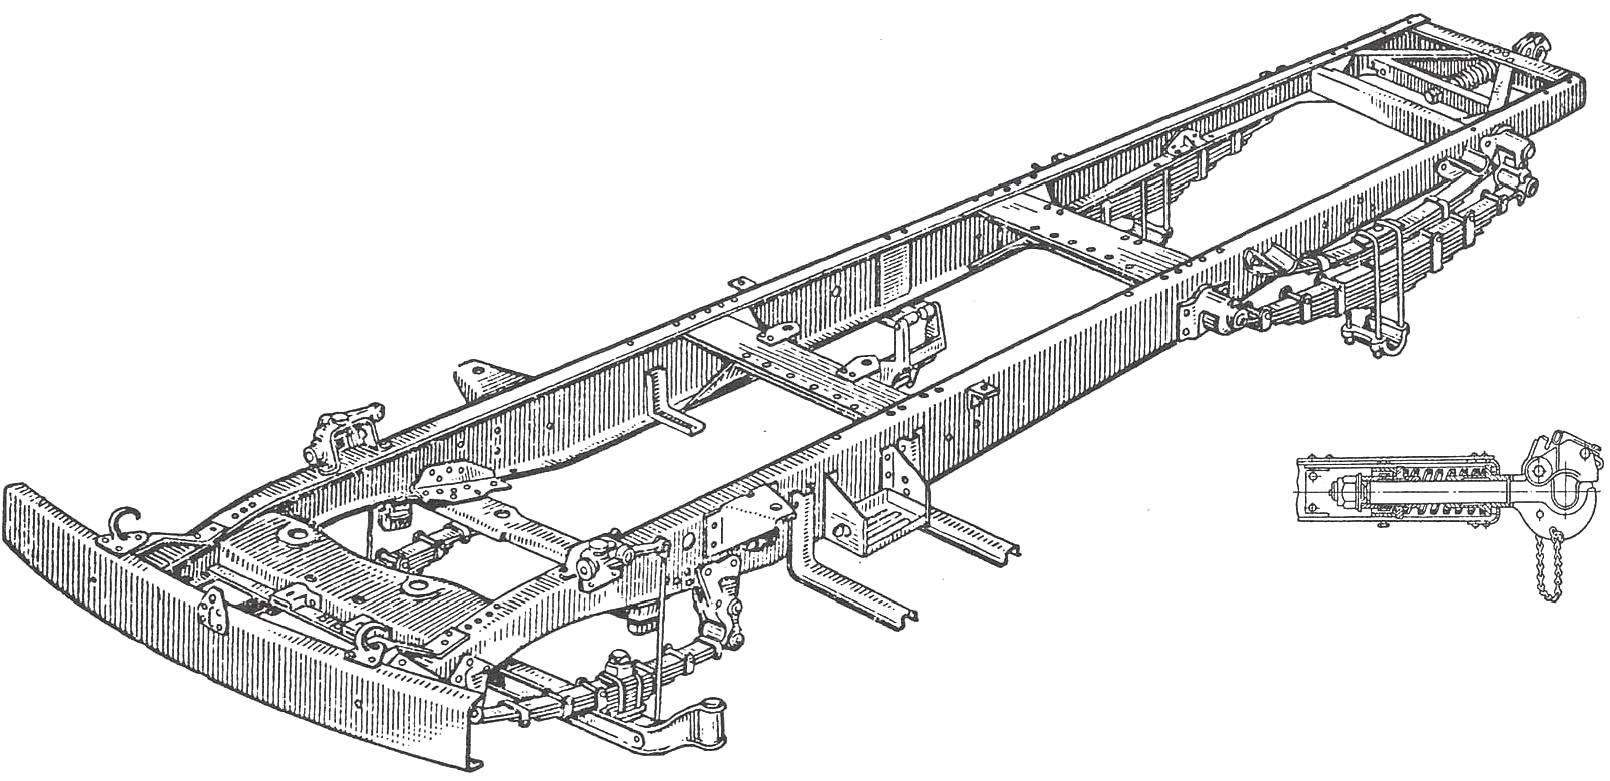 The frame of the car ZIL-164